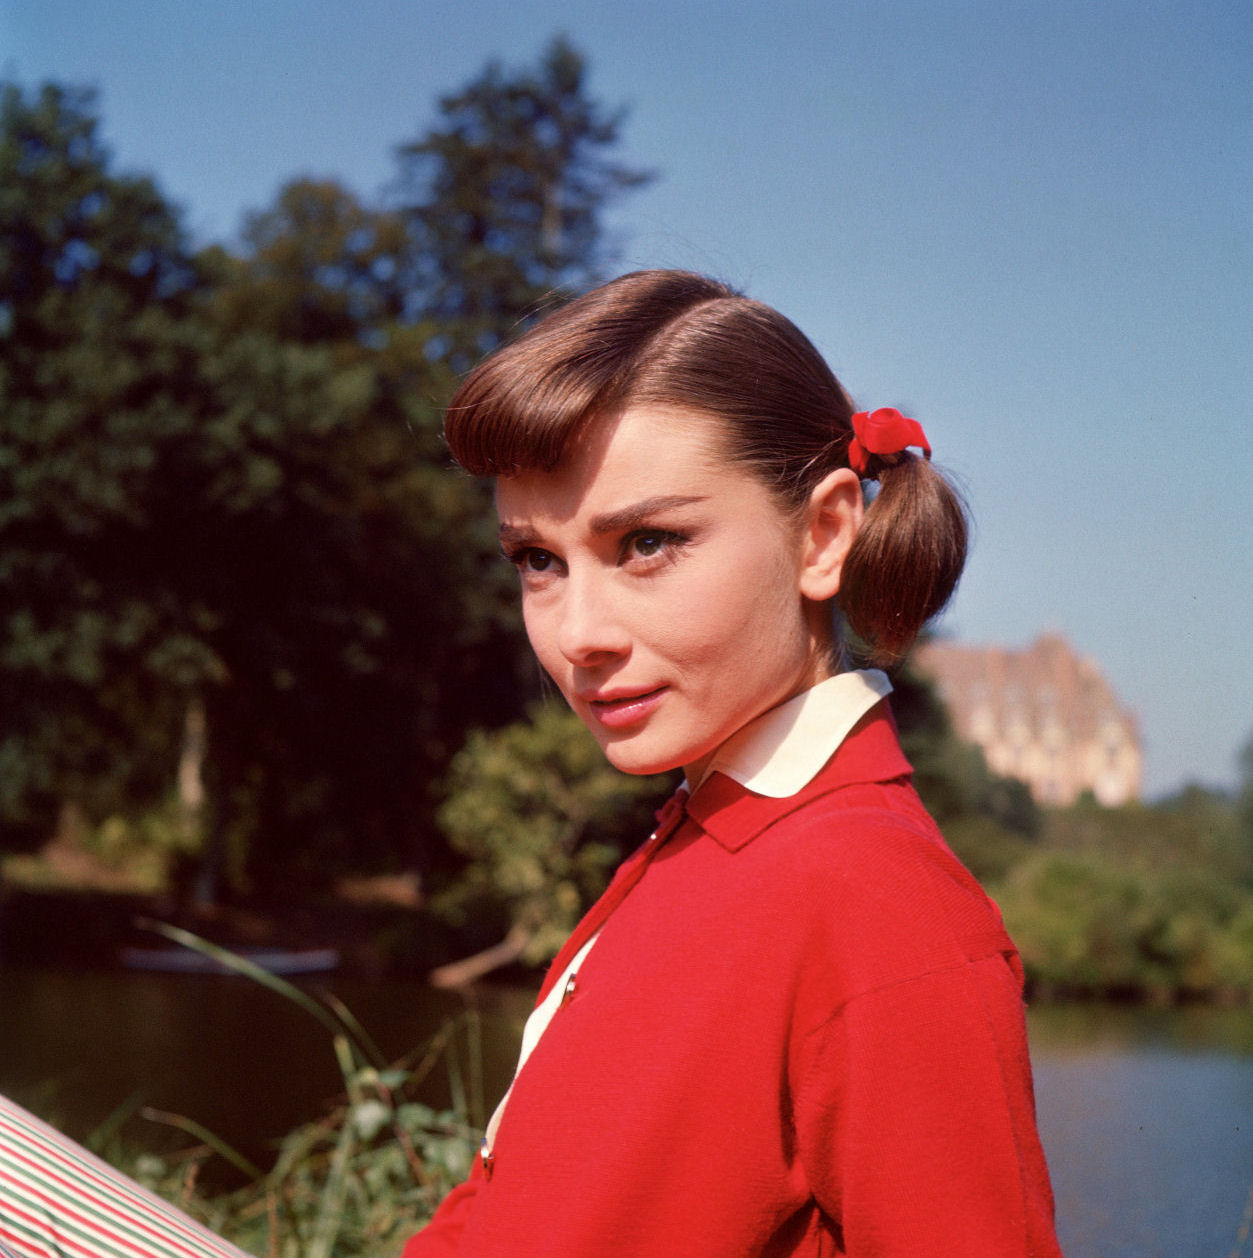 audrey hepburn - photo #16